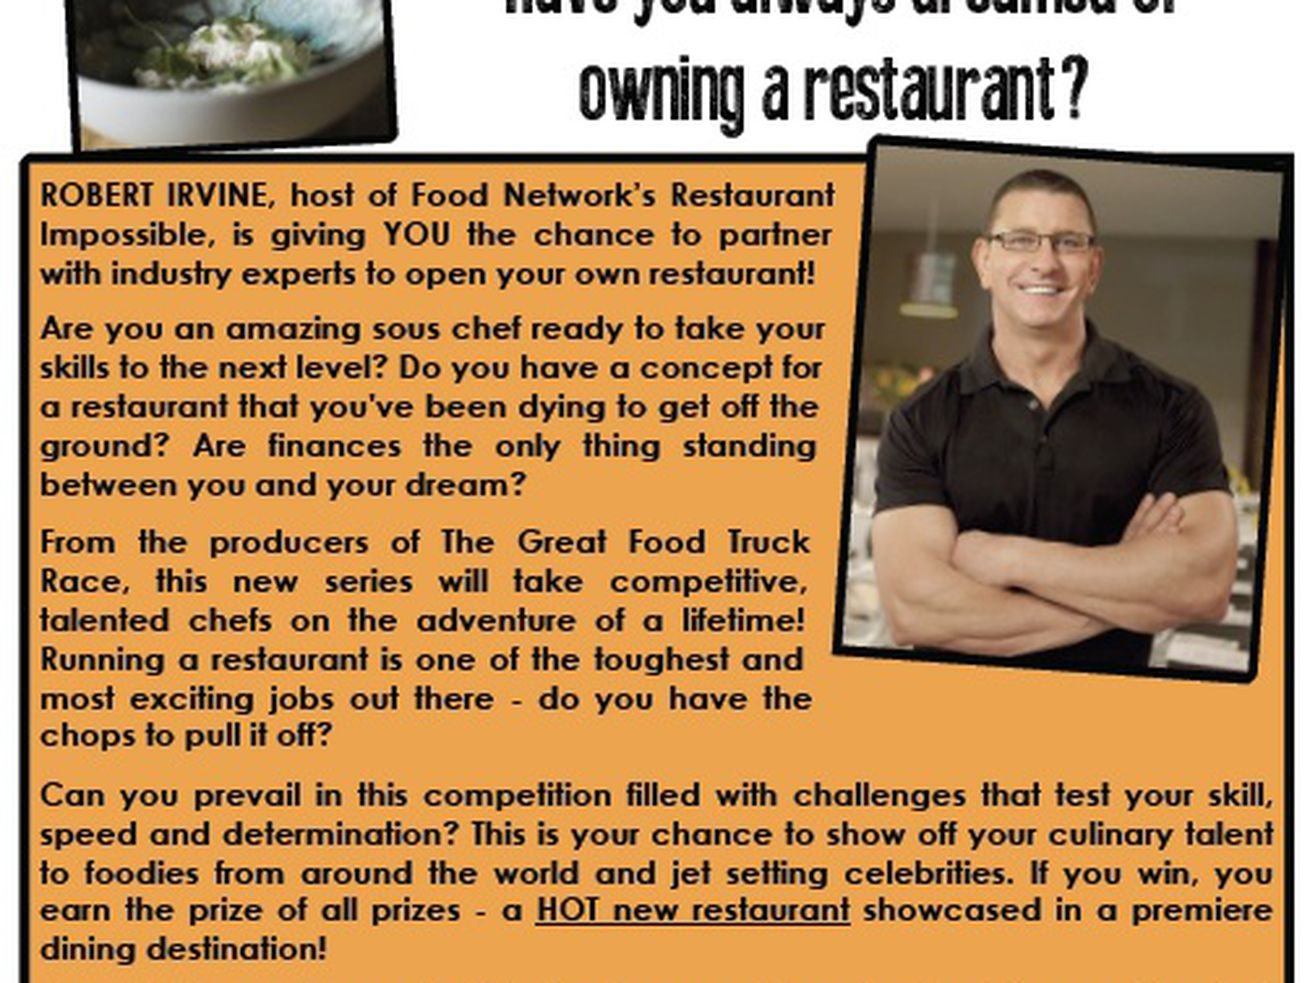 robert irvine casting chefs to win hot new restaurant eater